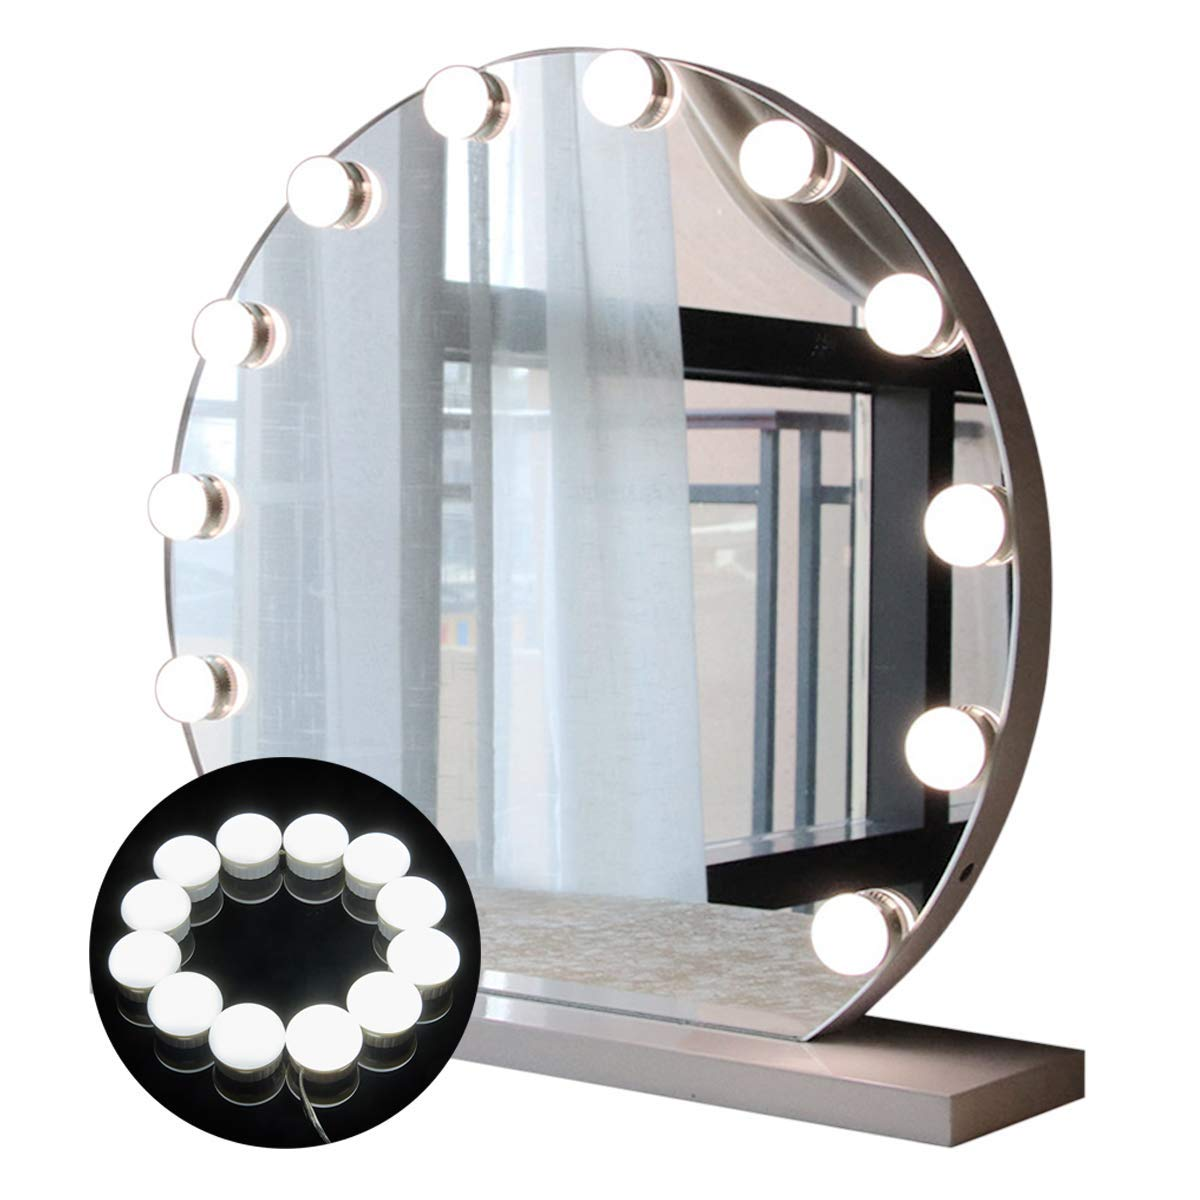 Hollywood Style LED Vanity Mirror Lights Kit, Guckmall 12 LED 17.6ft 7000K Dimmable Daylight White Flexible LED Light Strip with Dimmer for Makeup Vanity Table Set in Dressing Room Mirror Not Included